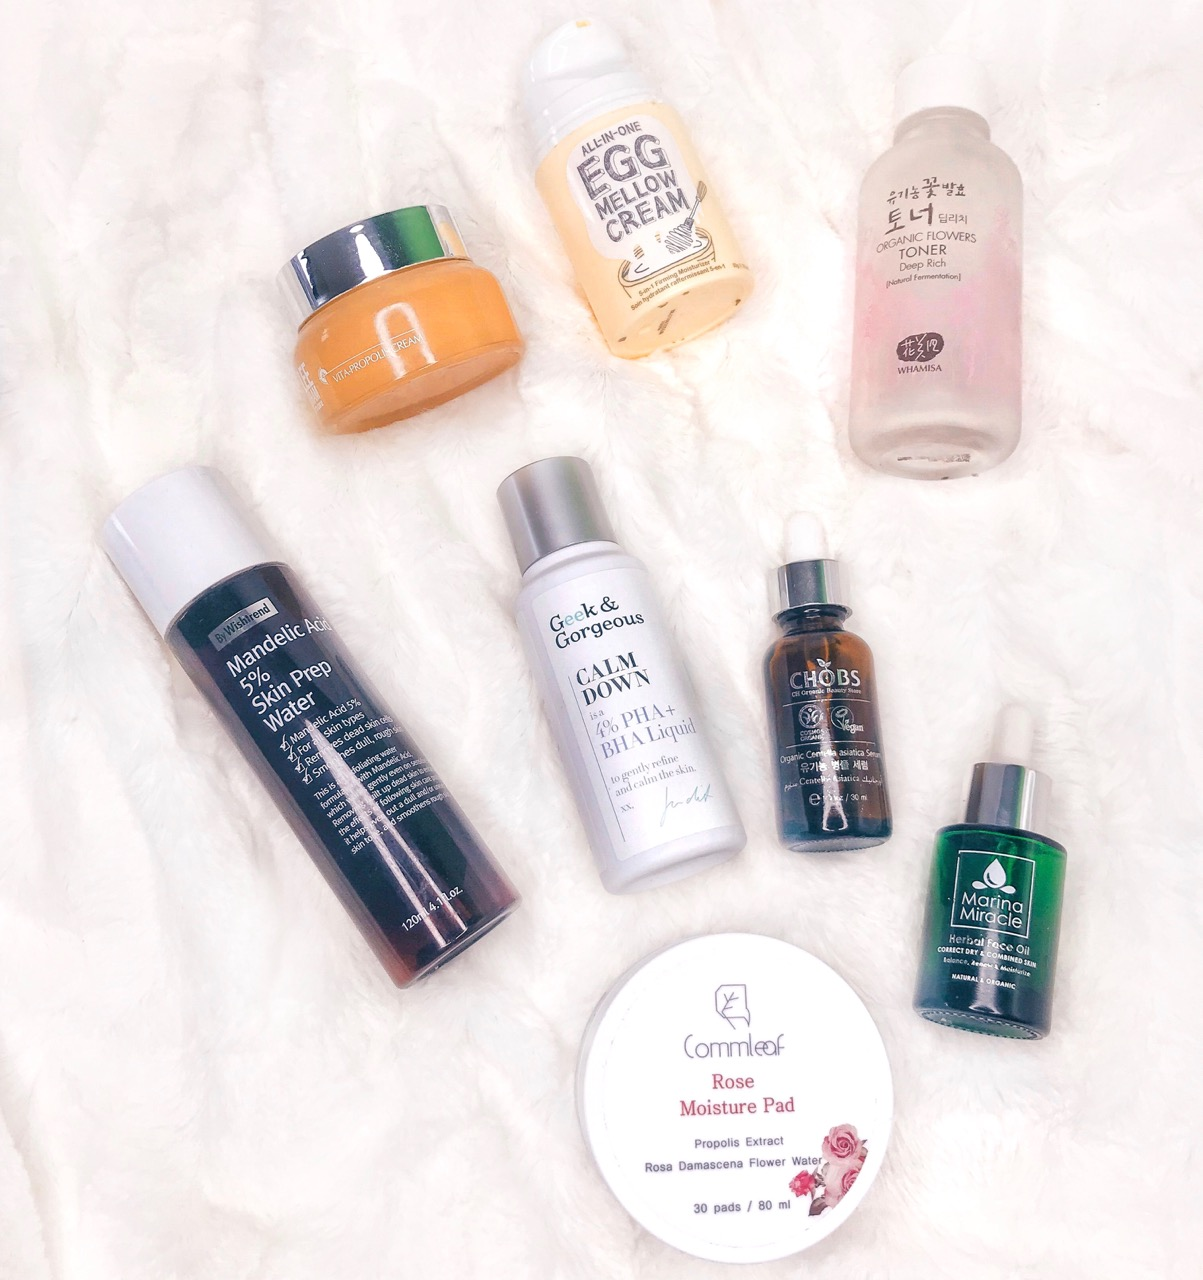 Meine K-Beauty Empties Januar 2019